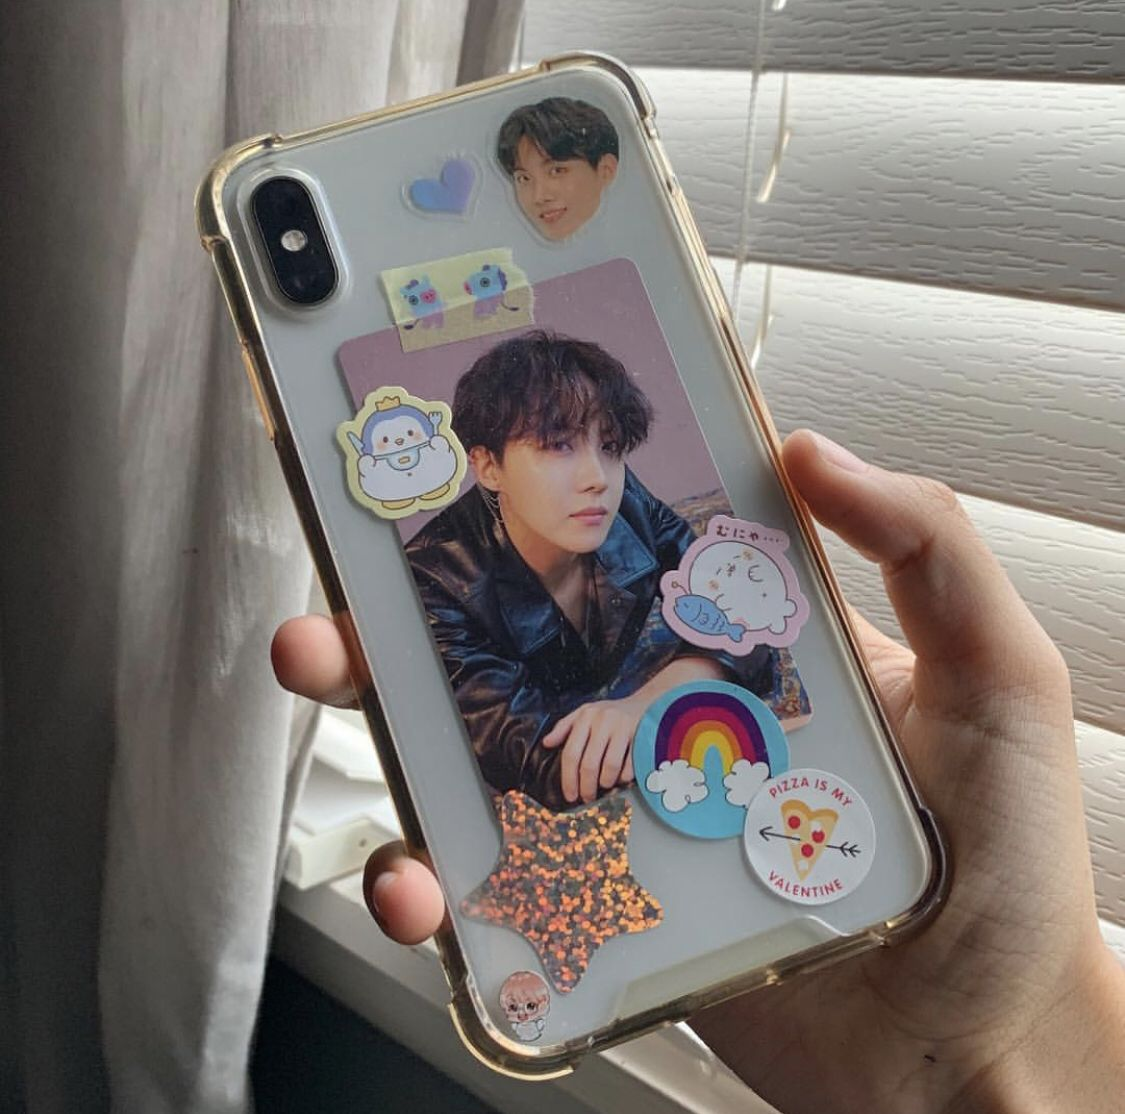 Pin by Chimmy💜 on Bts | Kpop phone cases, Aesthetic phone ...